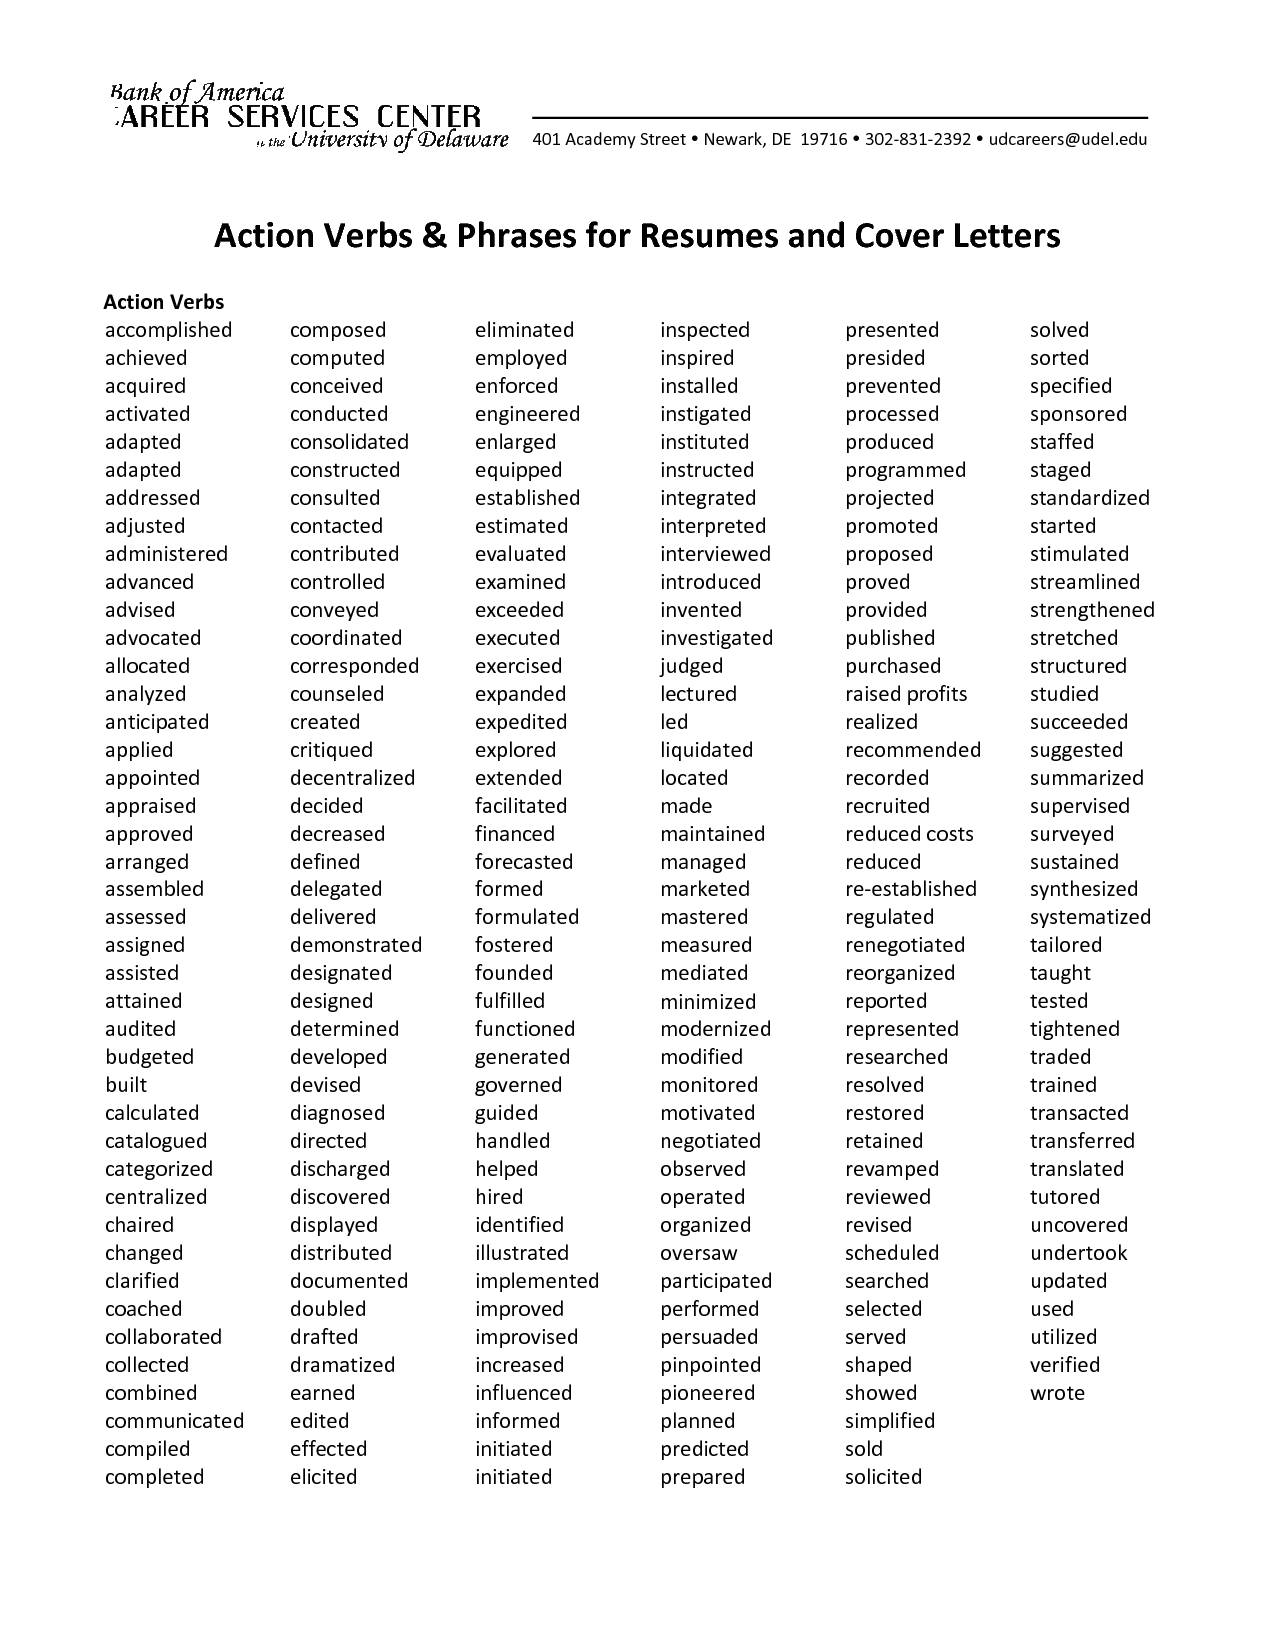 resume action verbs finance